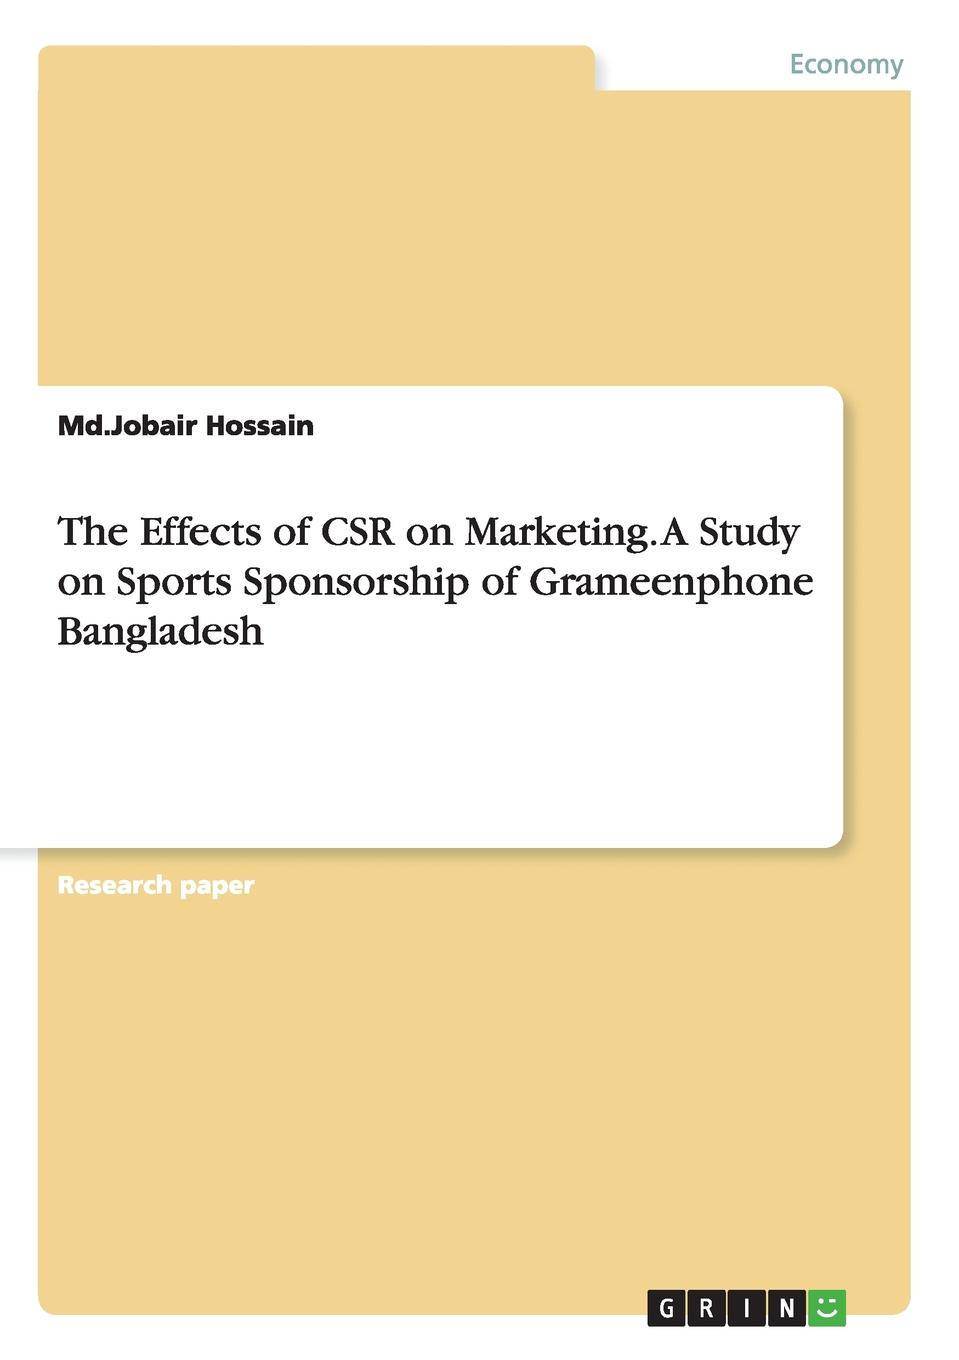 купить Md.Jobair Hossain The Effects of CSR on Marketing. A Study on Sports Sponsorship of Grameenphone Bangladesh по цене 2989 рублей